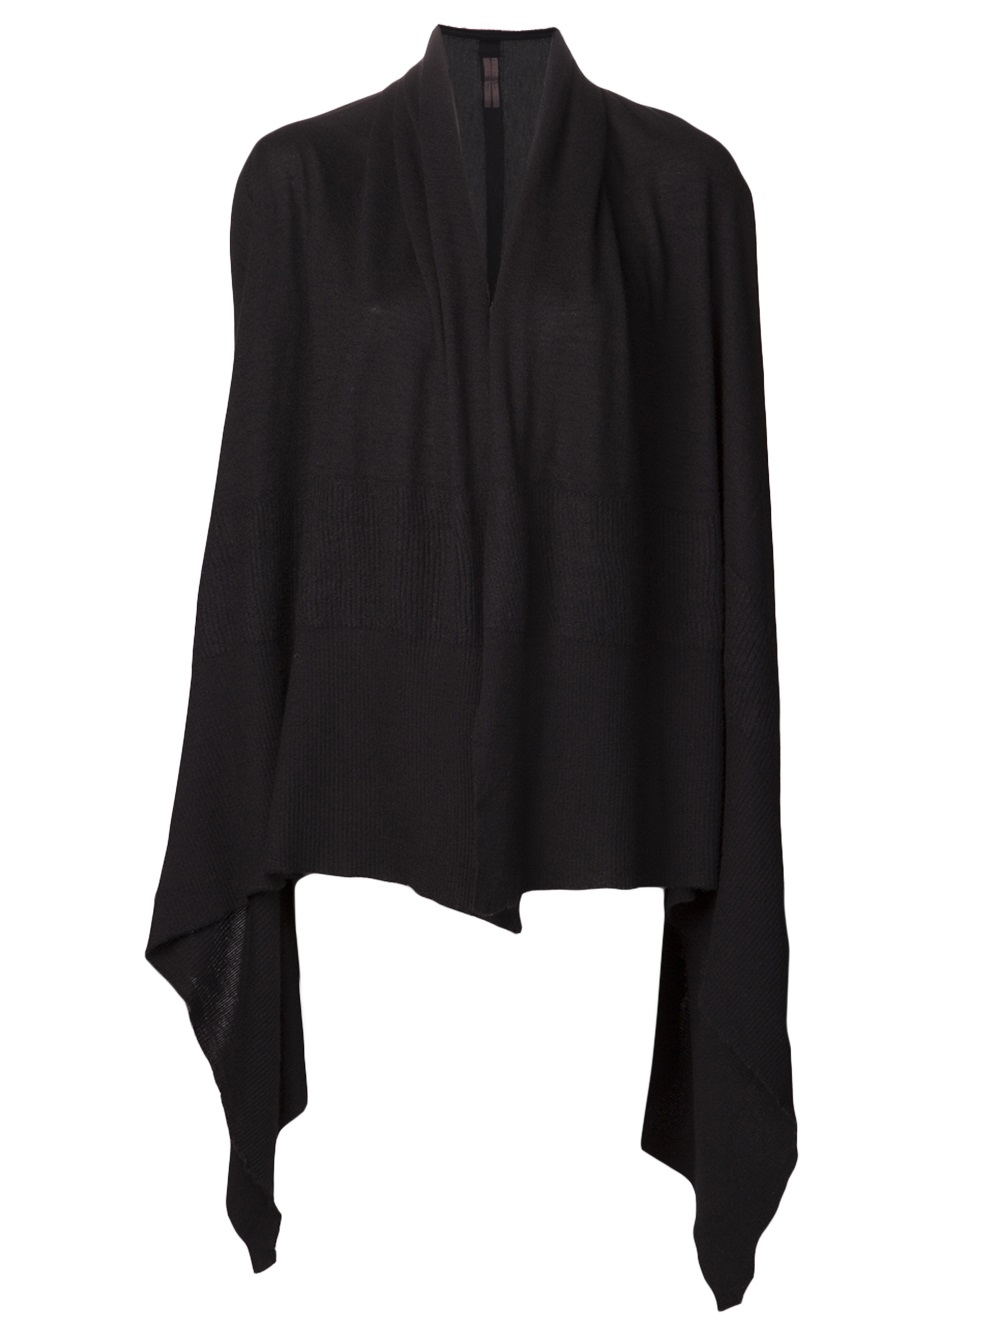 Rick owens Cashmere Hooded Wrap Sweater in Black | Lyst